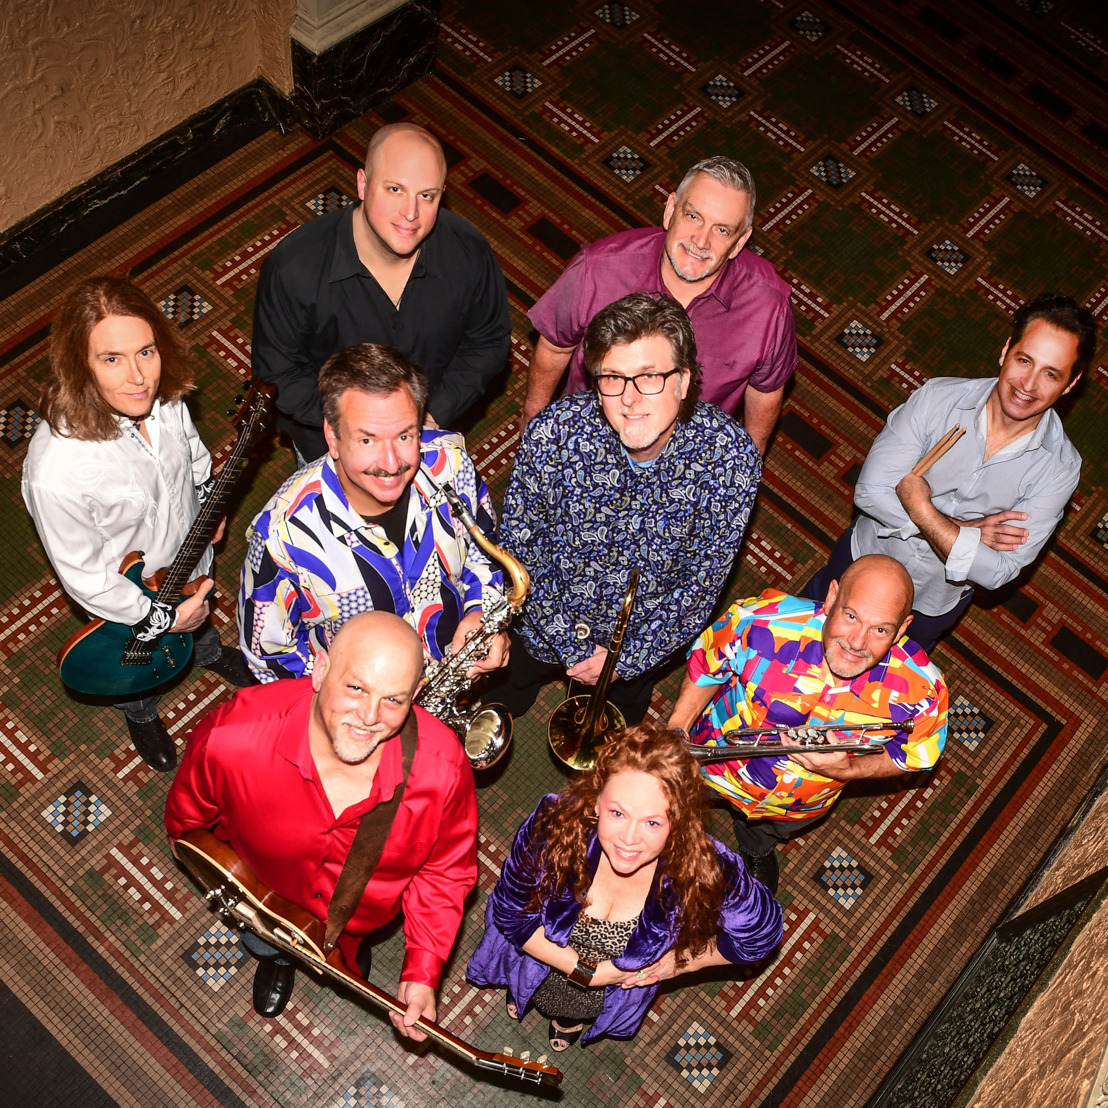 All in the Family: The Sweetwater All-Stars Lay it Down 'Old School'